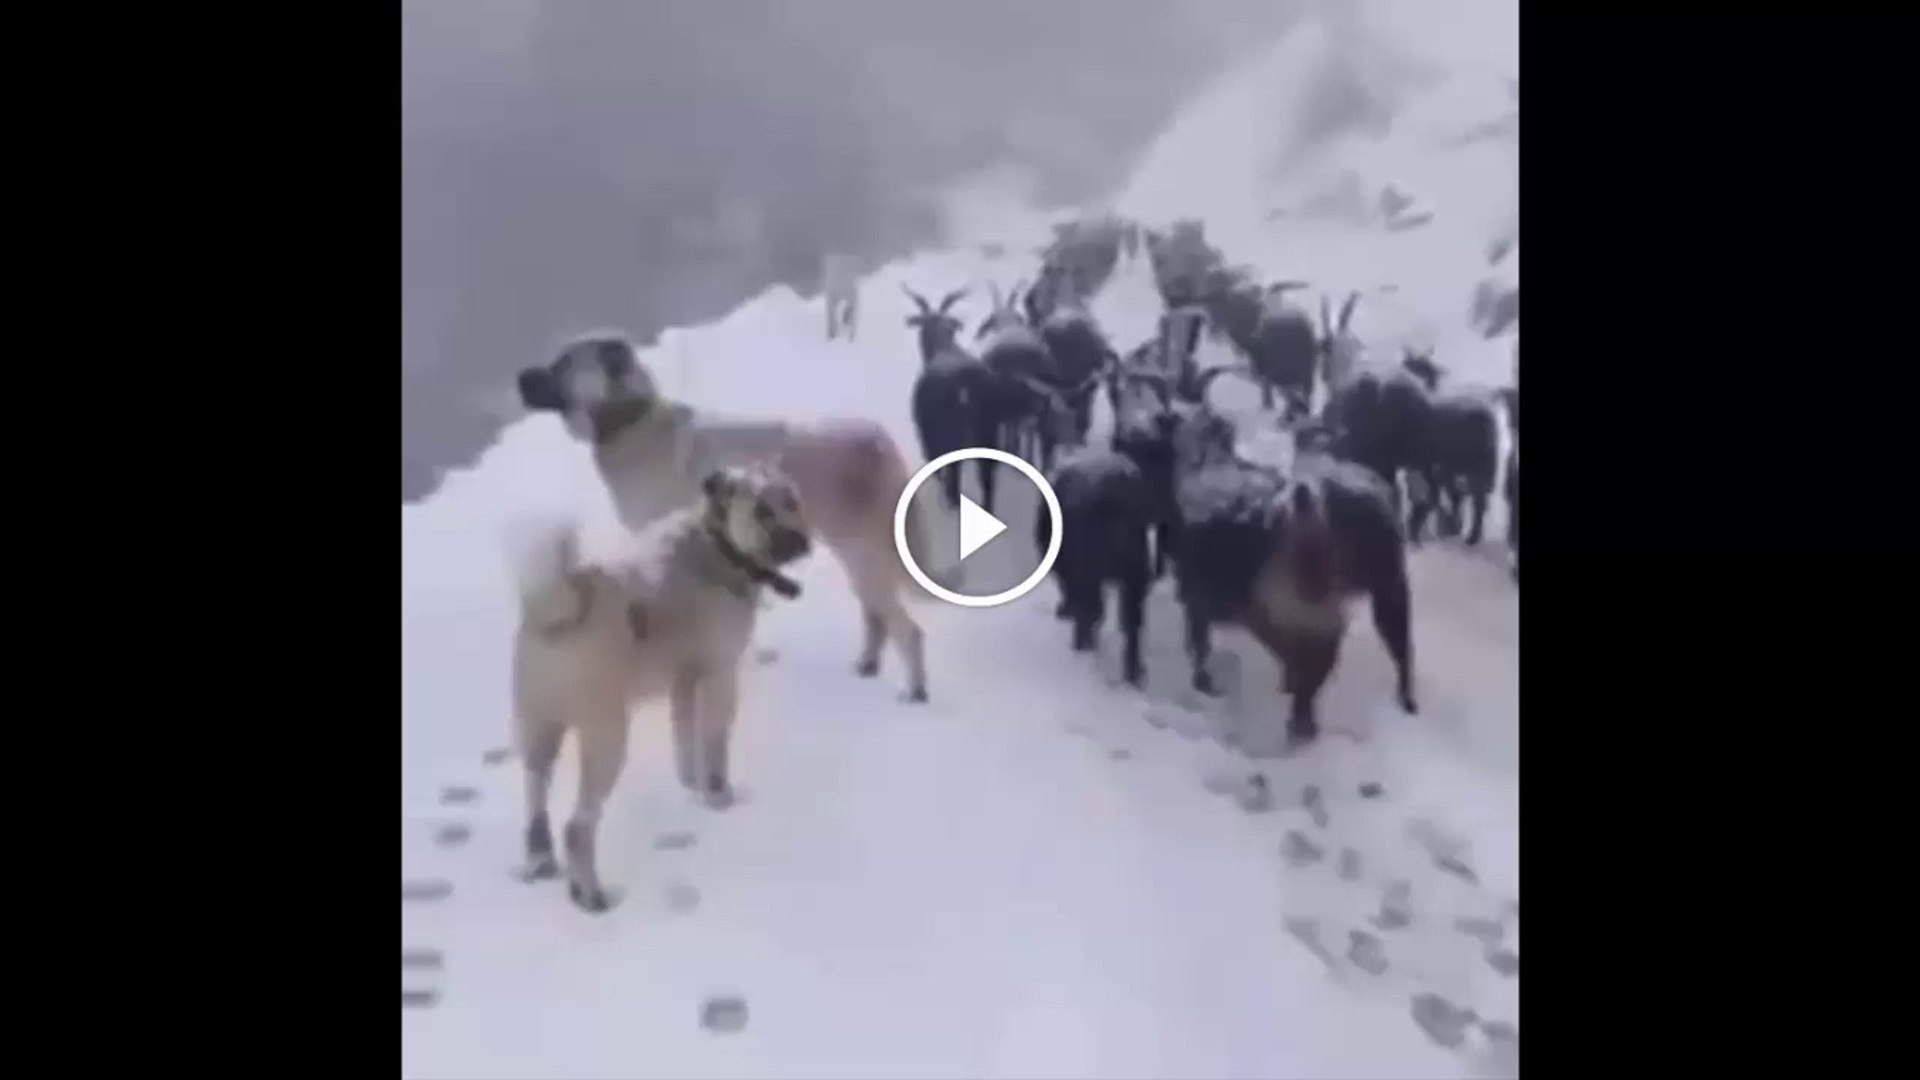 SiVAS KANGAL KOPEGi KAR KIS DEMiYOR - ANATOLiAN SHEPHERD KANGAL DOG WiNTER and SHEEP